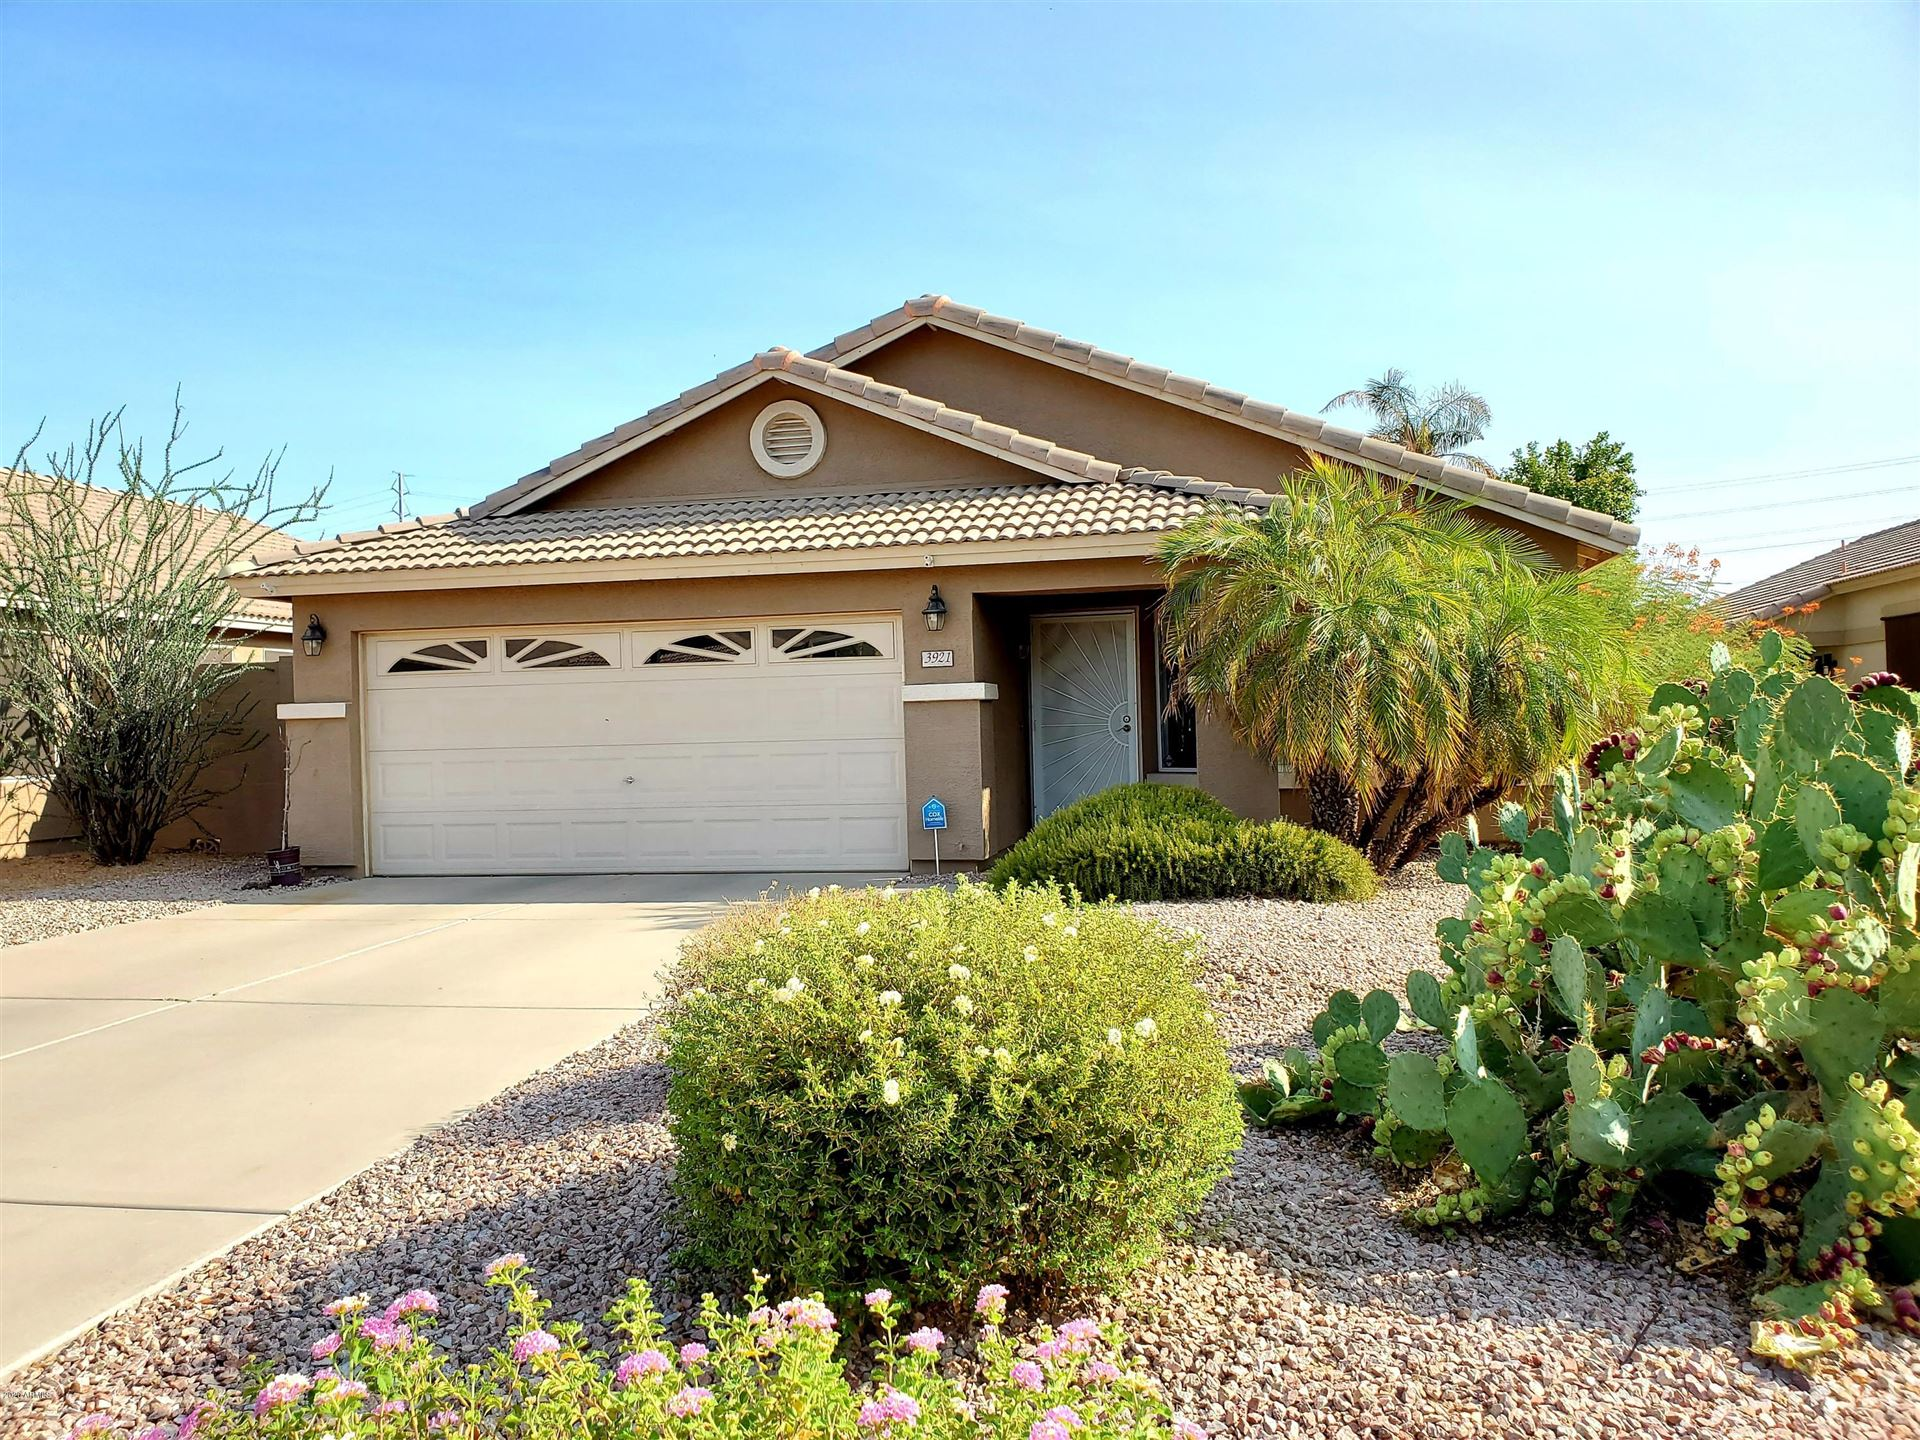 3921 E REDFIELD Court, Gilbert, AZ 85234 - MLS#: 6131360